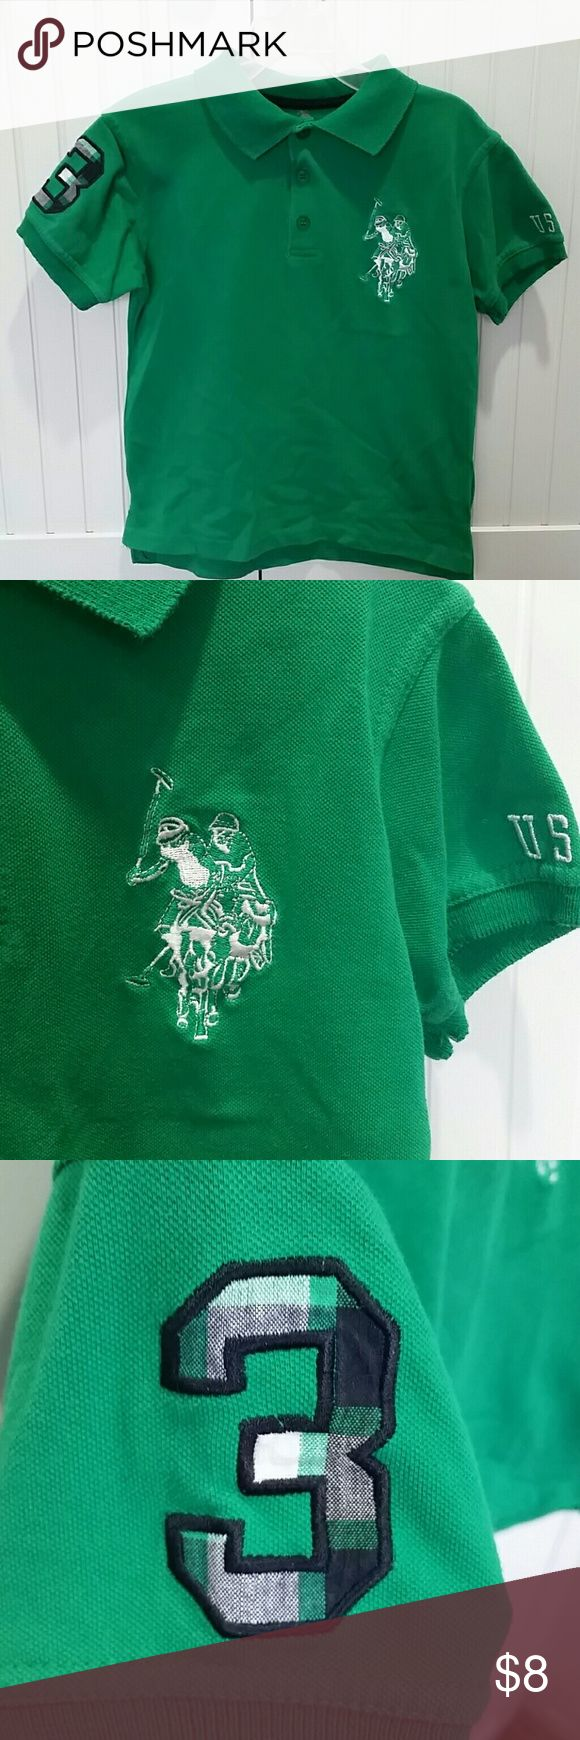 Boys 5/6 Green Polo Shirt This green boys polo shirt by U. S. Polo Association has quite a lot of detail! It is size 5/6.   This Polo features 2 stitched Polo Riders on the front of the shirt as well as USPA and a green plaid number 3 on the sleeves. There are 3 green usable buttons on the front.  The back of the top features the U.S. Polo Assn. logo with the number 90 in front of polo sticks, as well as a smaller print of the 2 Polo players that are seen on the front of the shirt.  The…